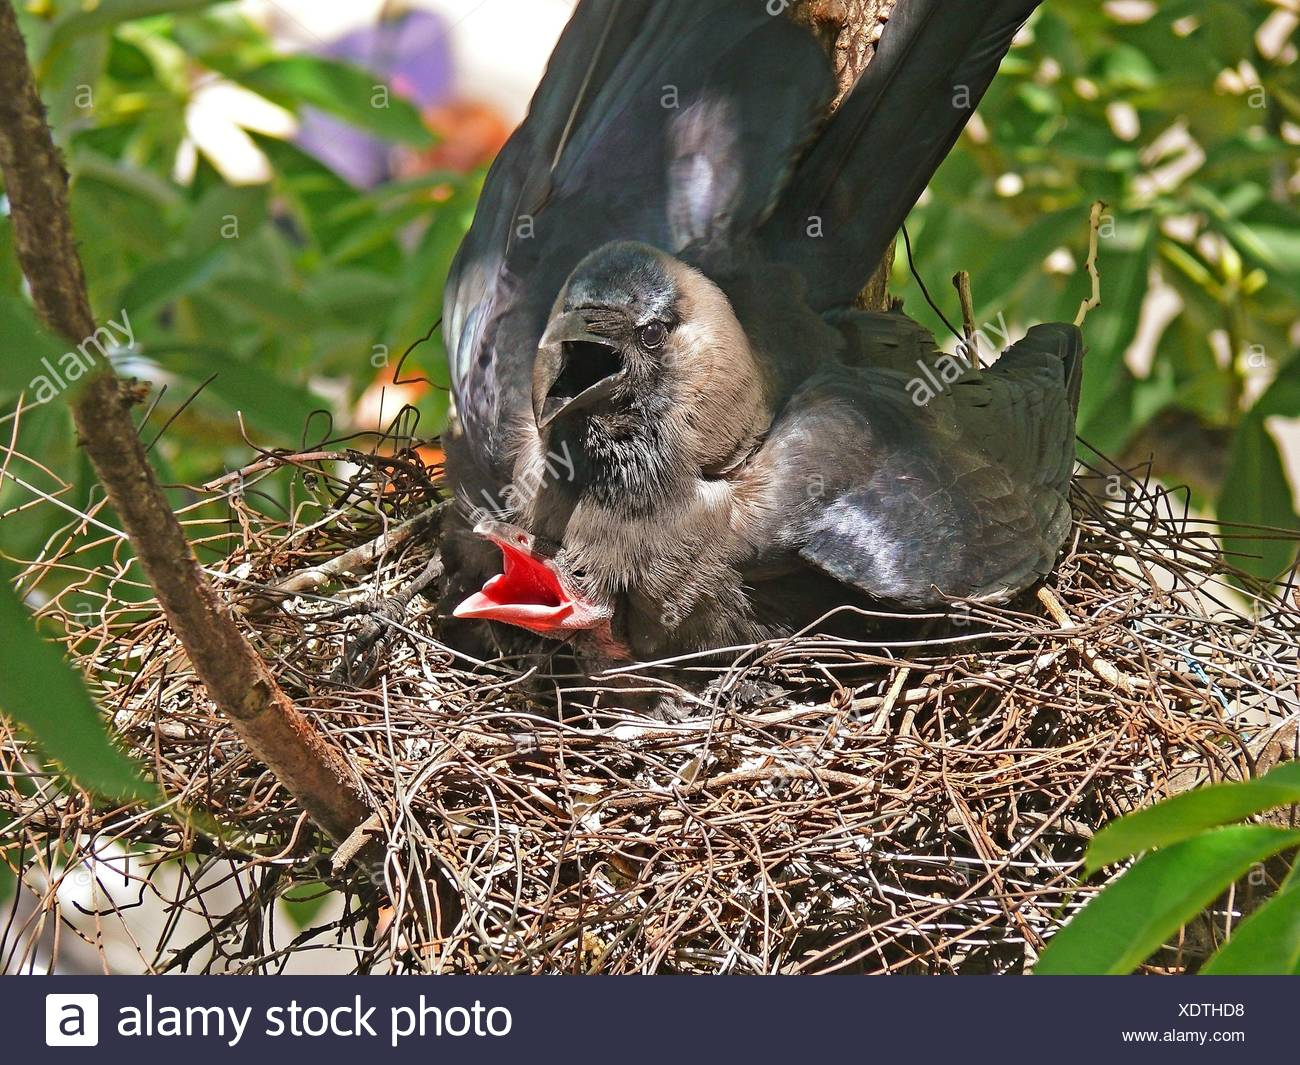 Nest of a house crow, Corvus Splendens with Young ones - Stock Image